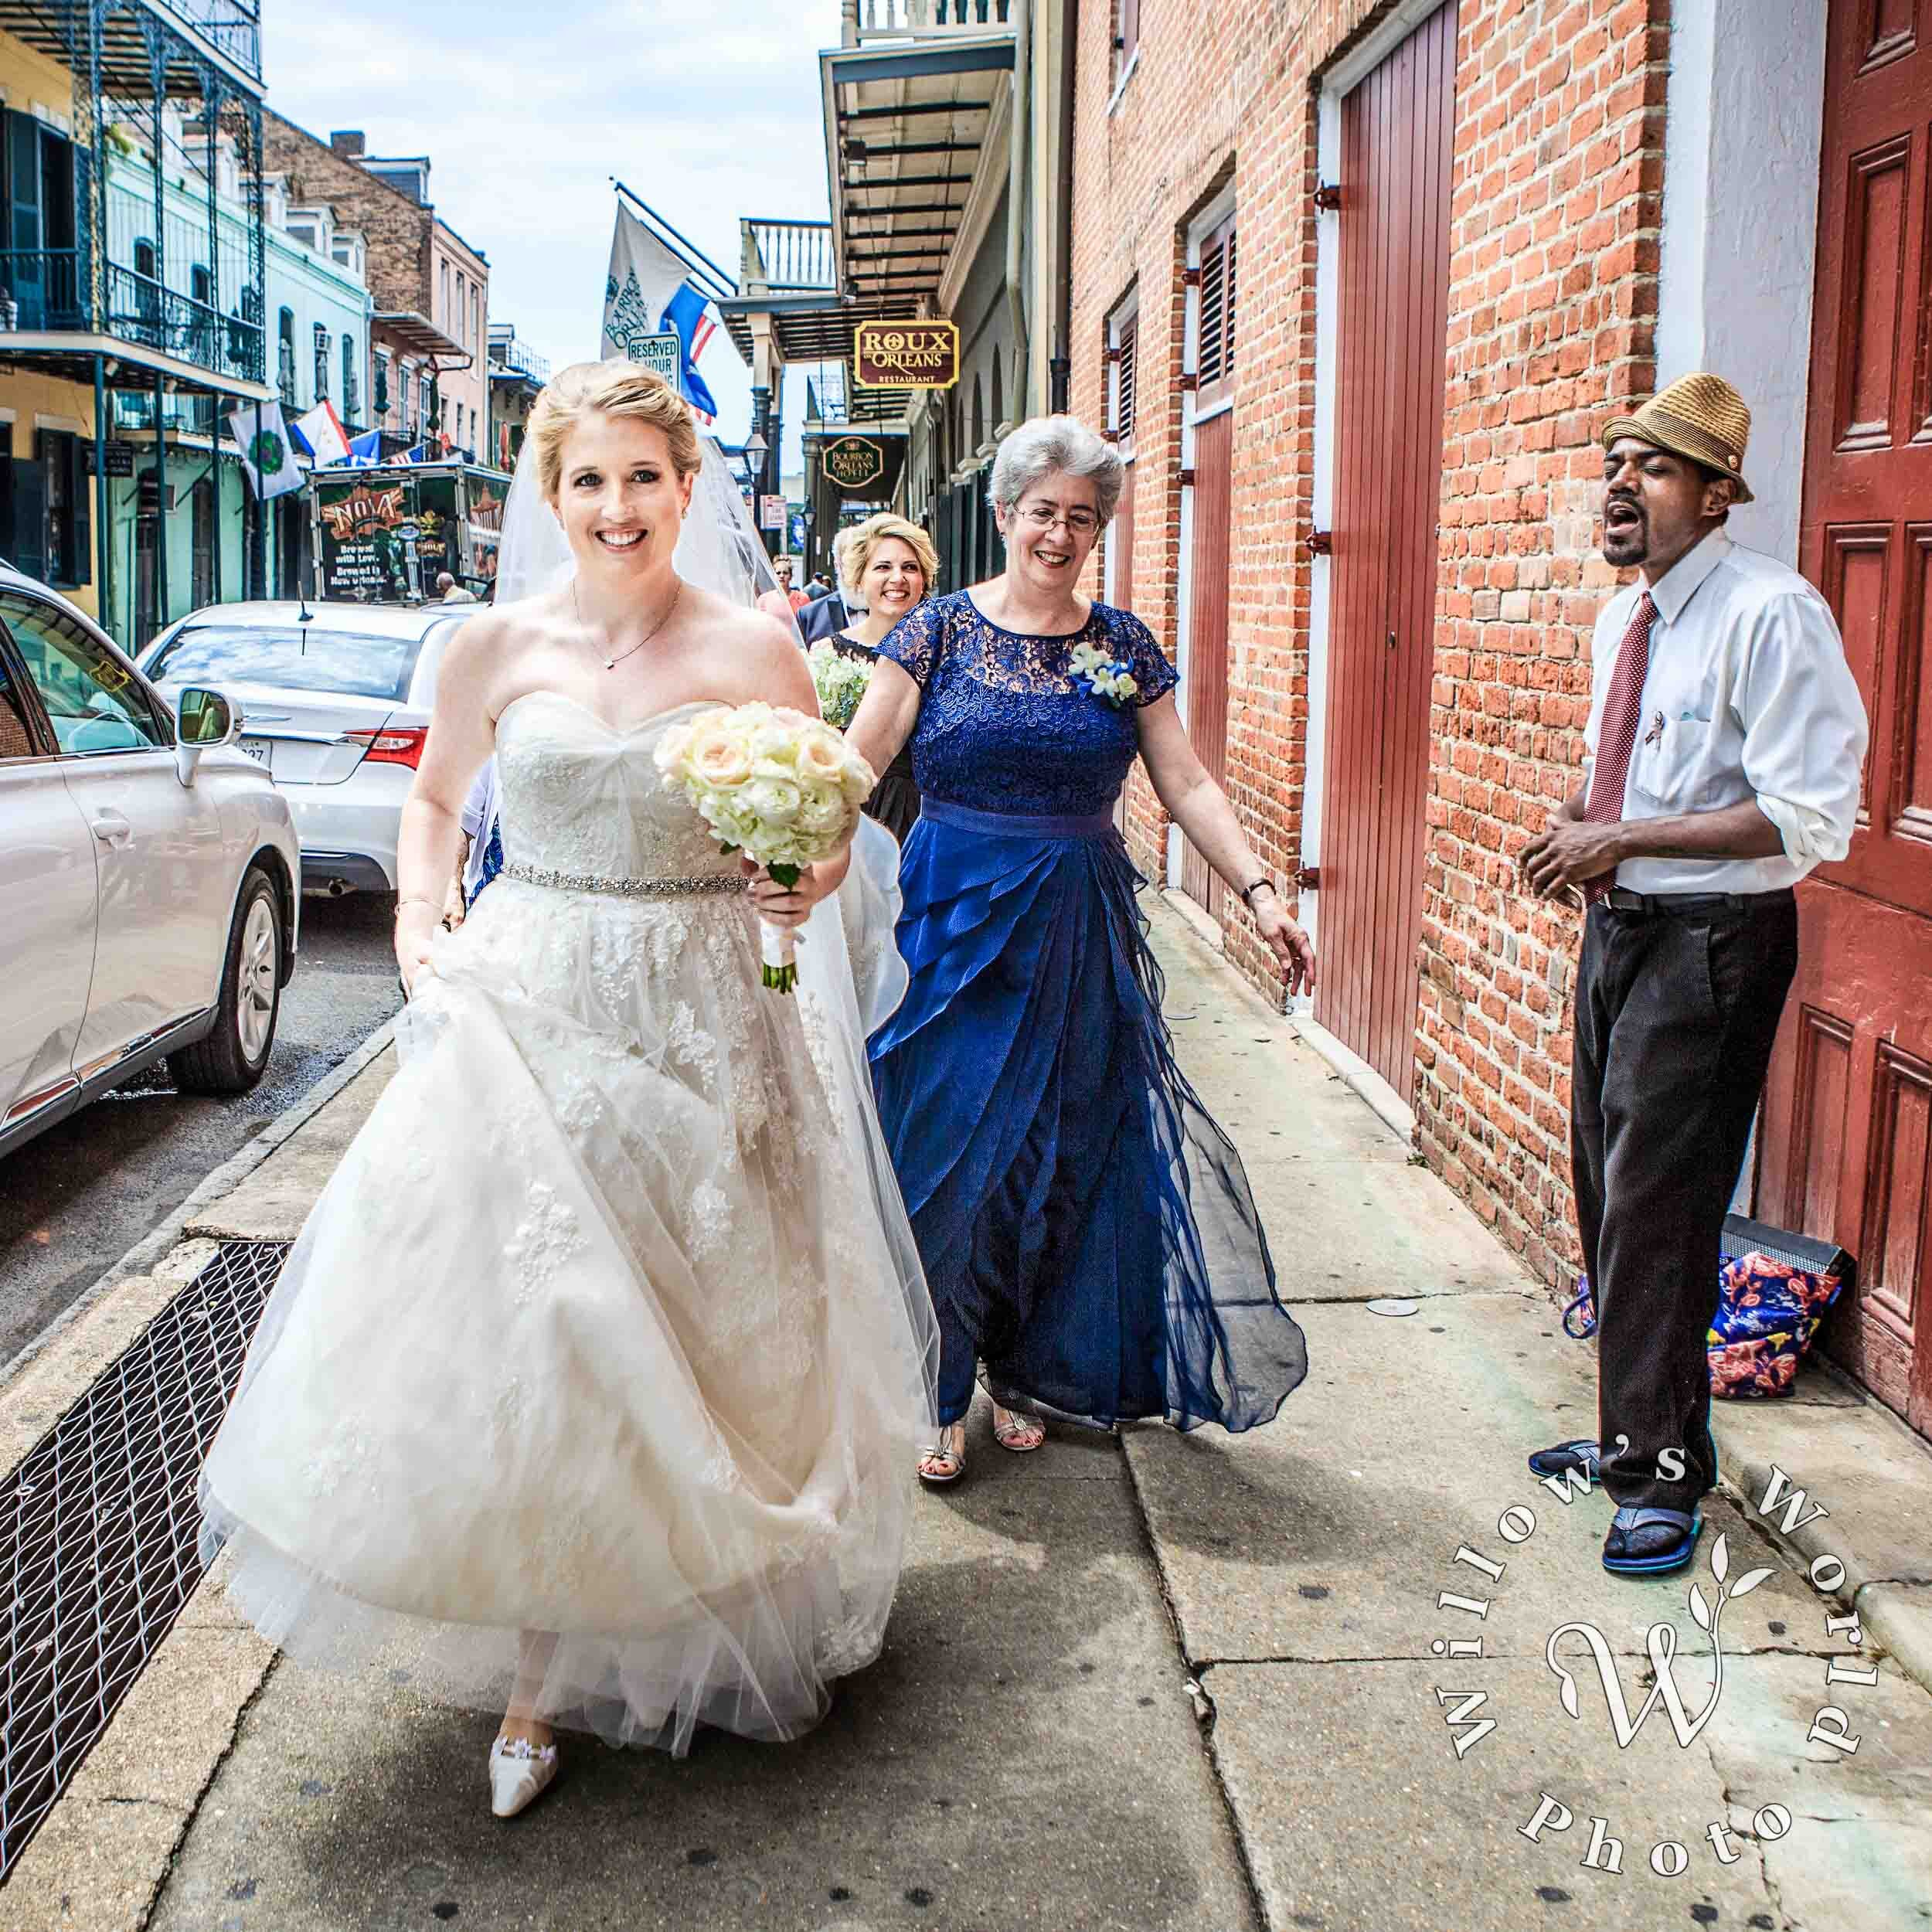 22-St-Louis-Cathedral-French-Quarter-New-Orleans-Wedding-Ceremony-Willows-World-Photo-Edit.jpg